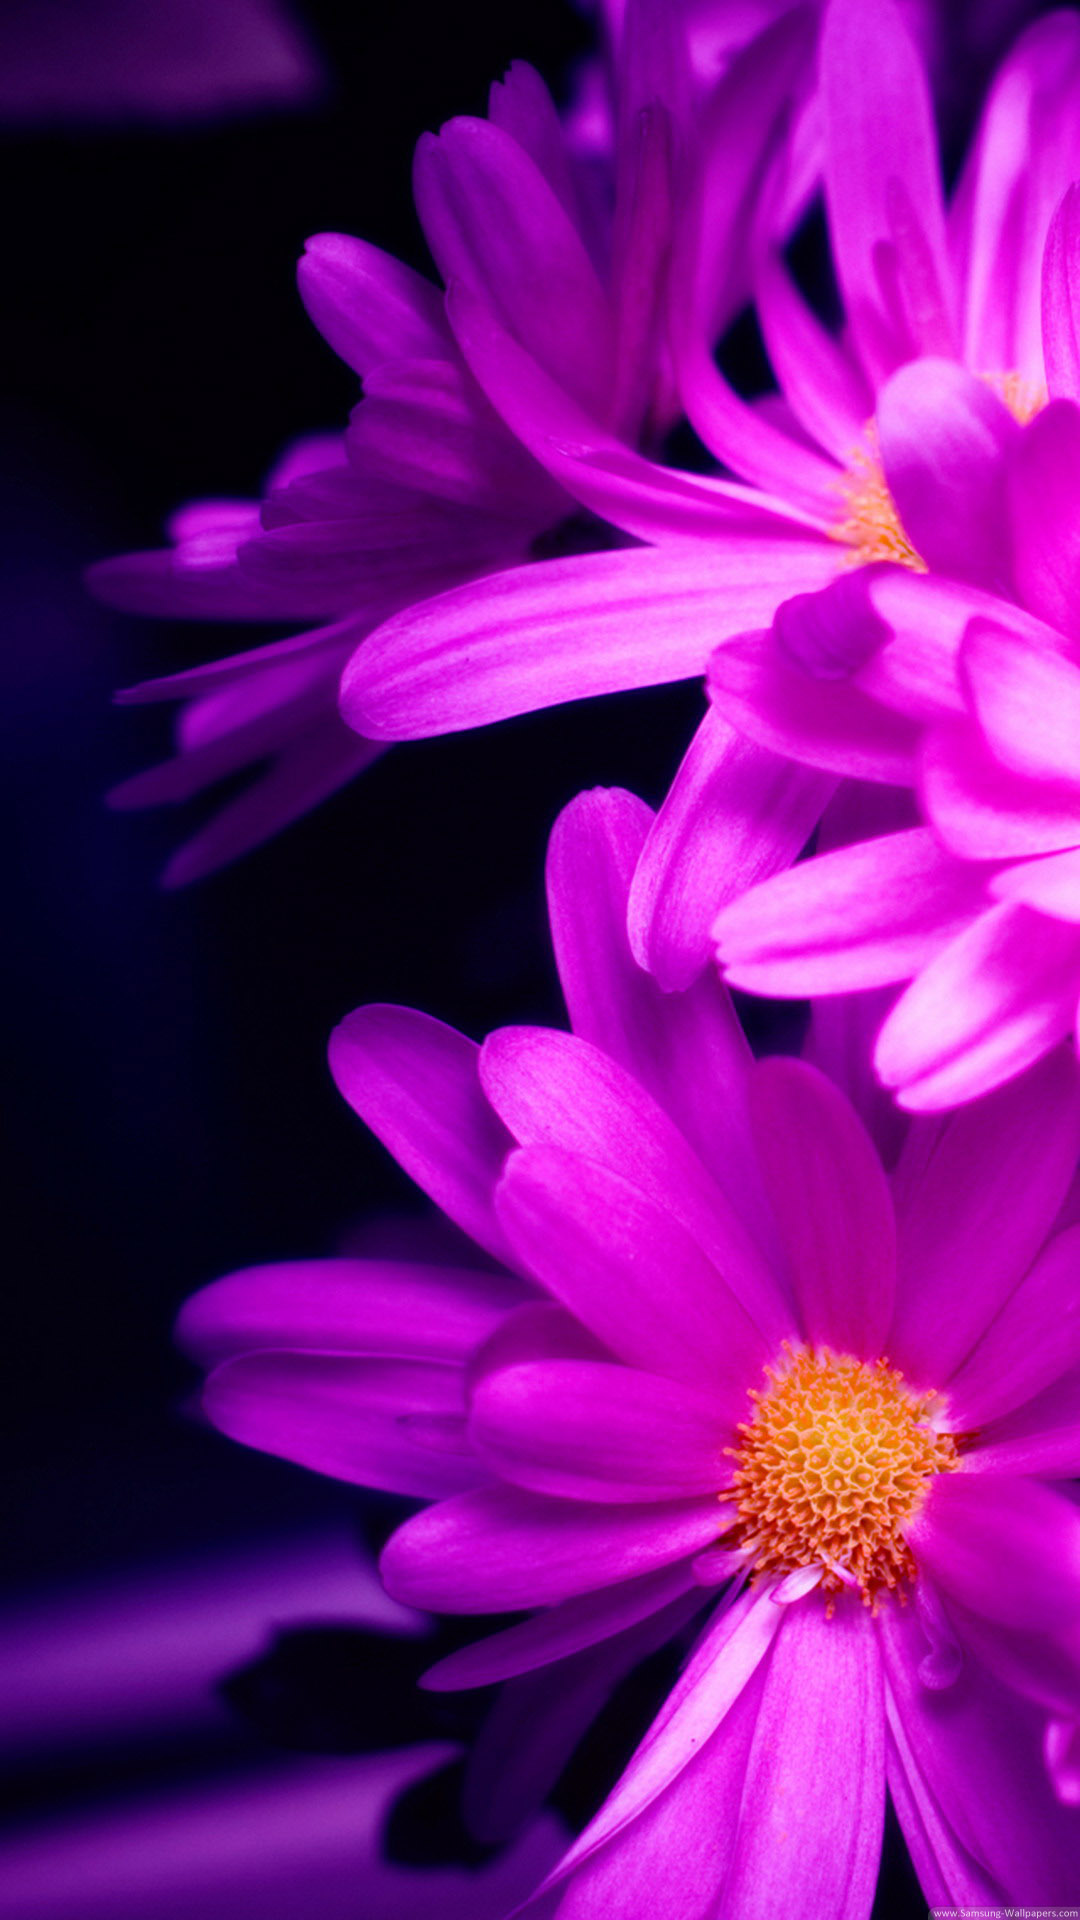 Pink Daisy Wallpaper iPhone 6 Plus preview 1080x1920